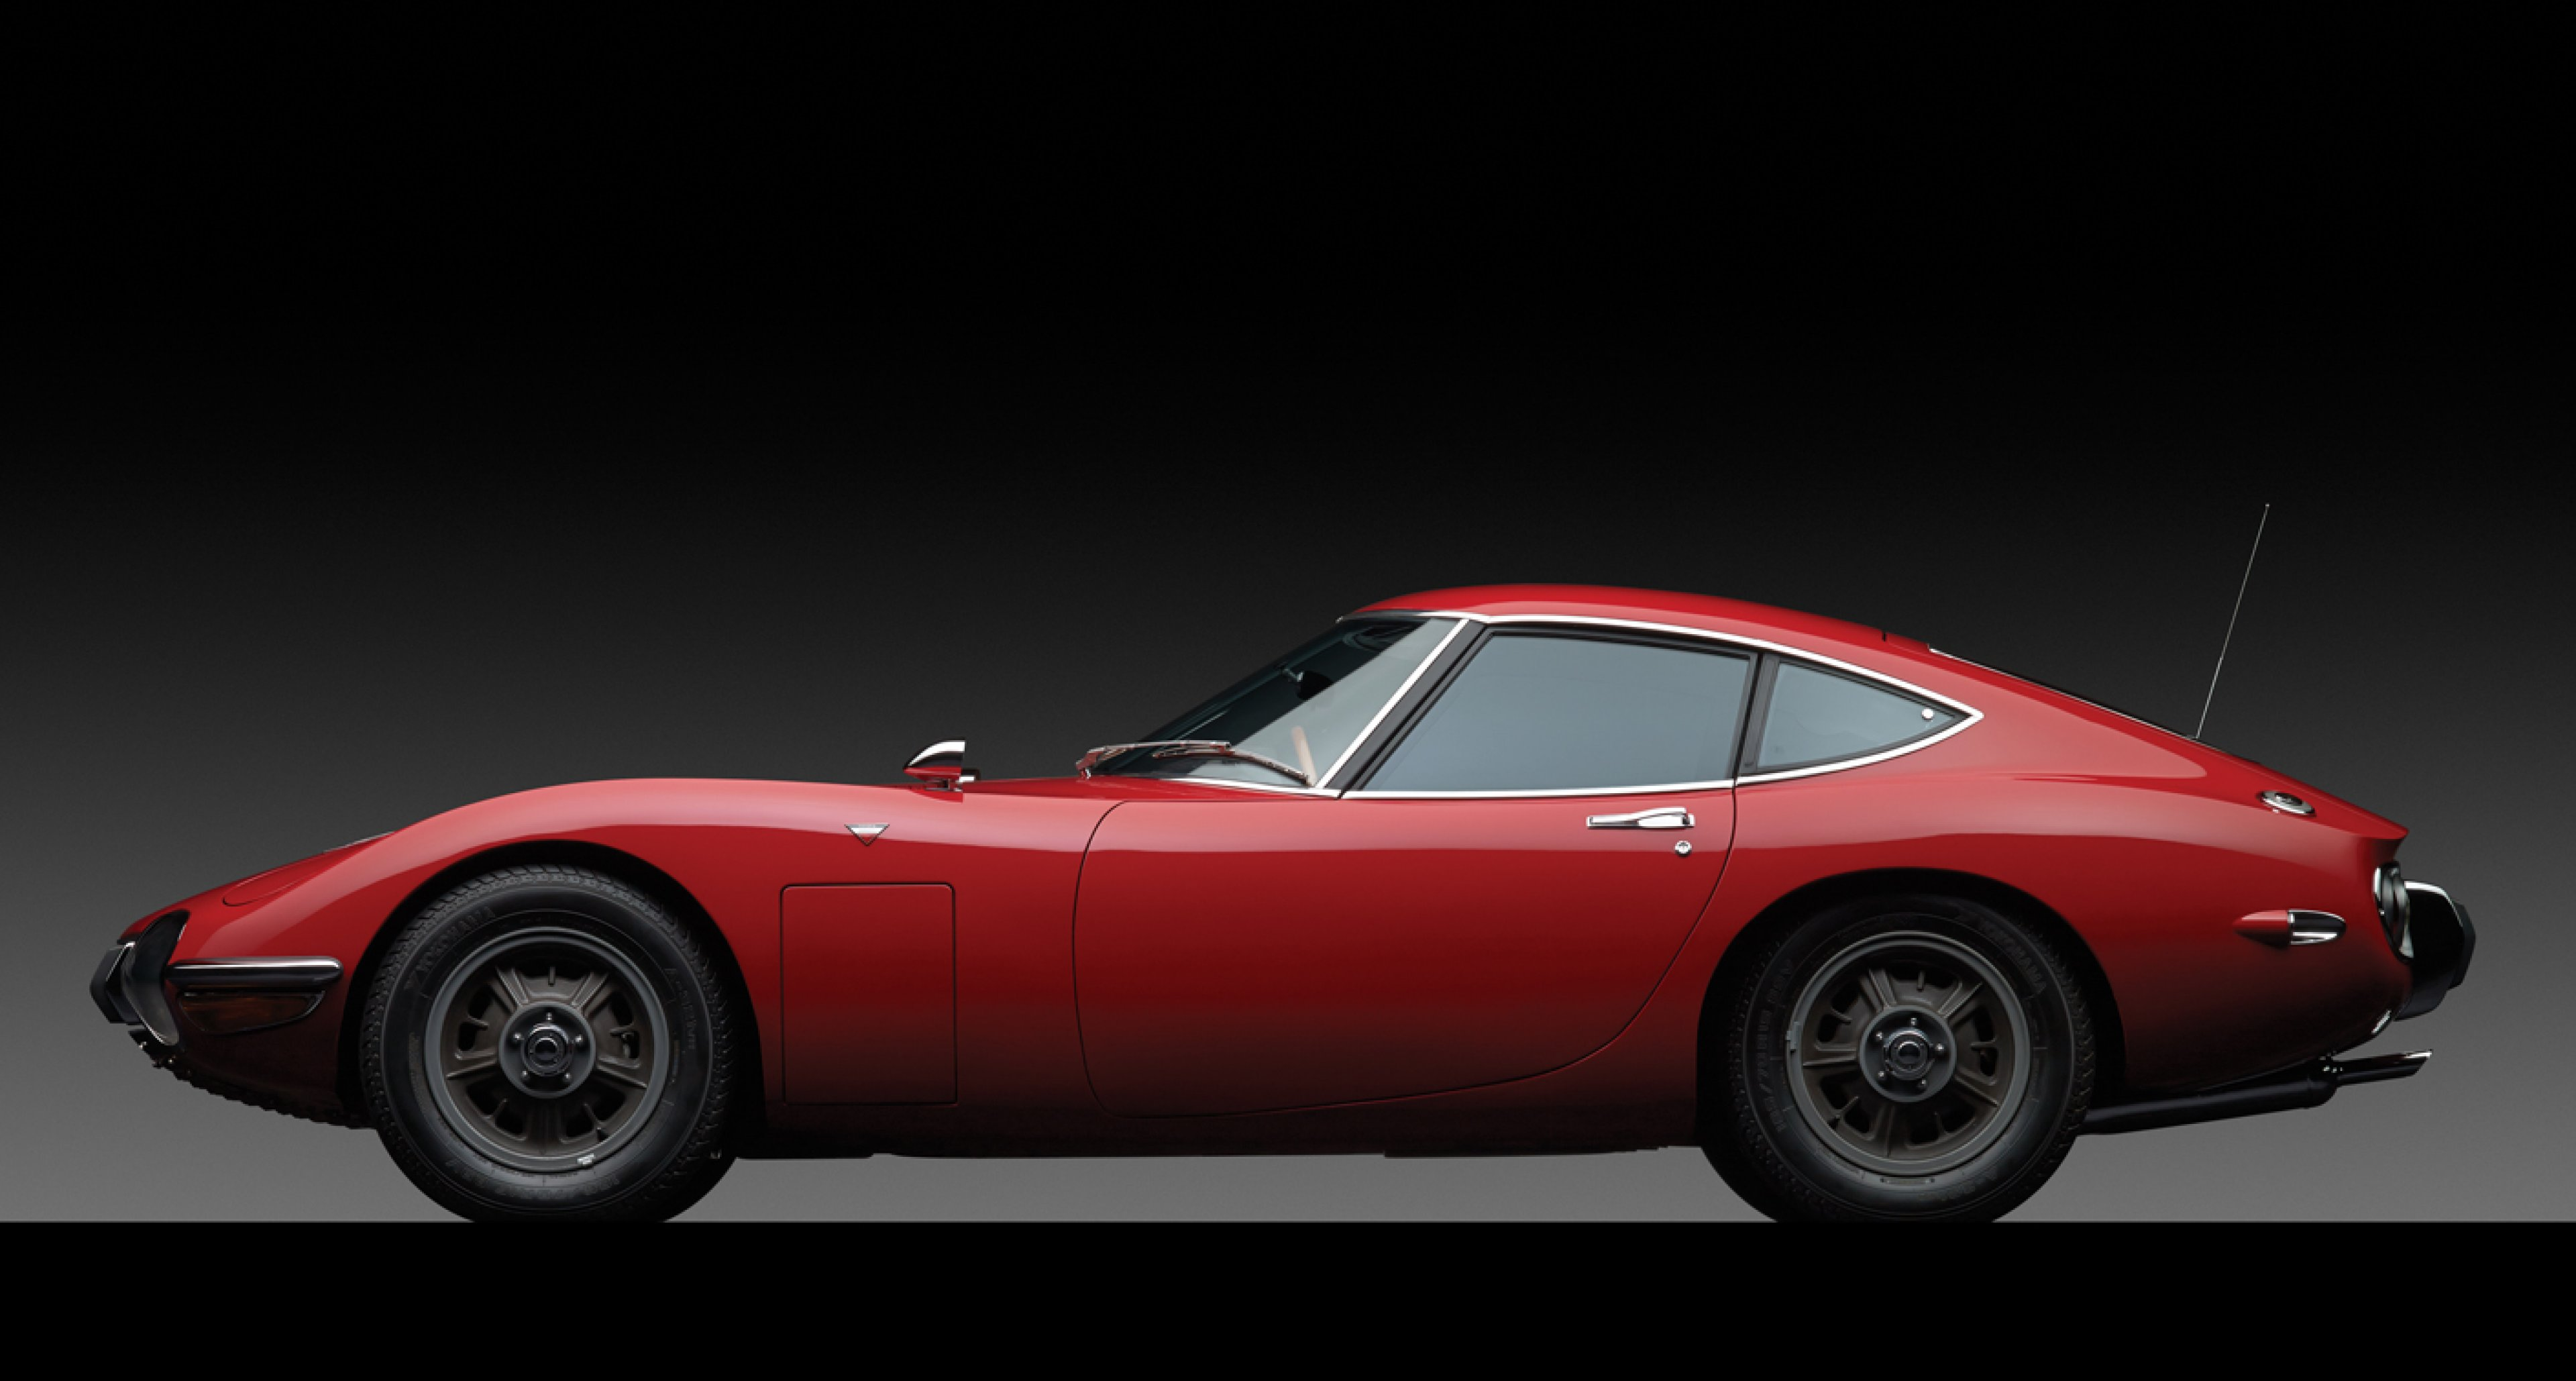 Toyota 2000GT: Japan's million-dollar E-type